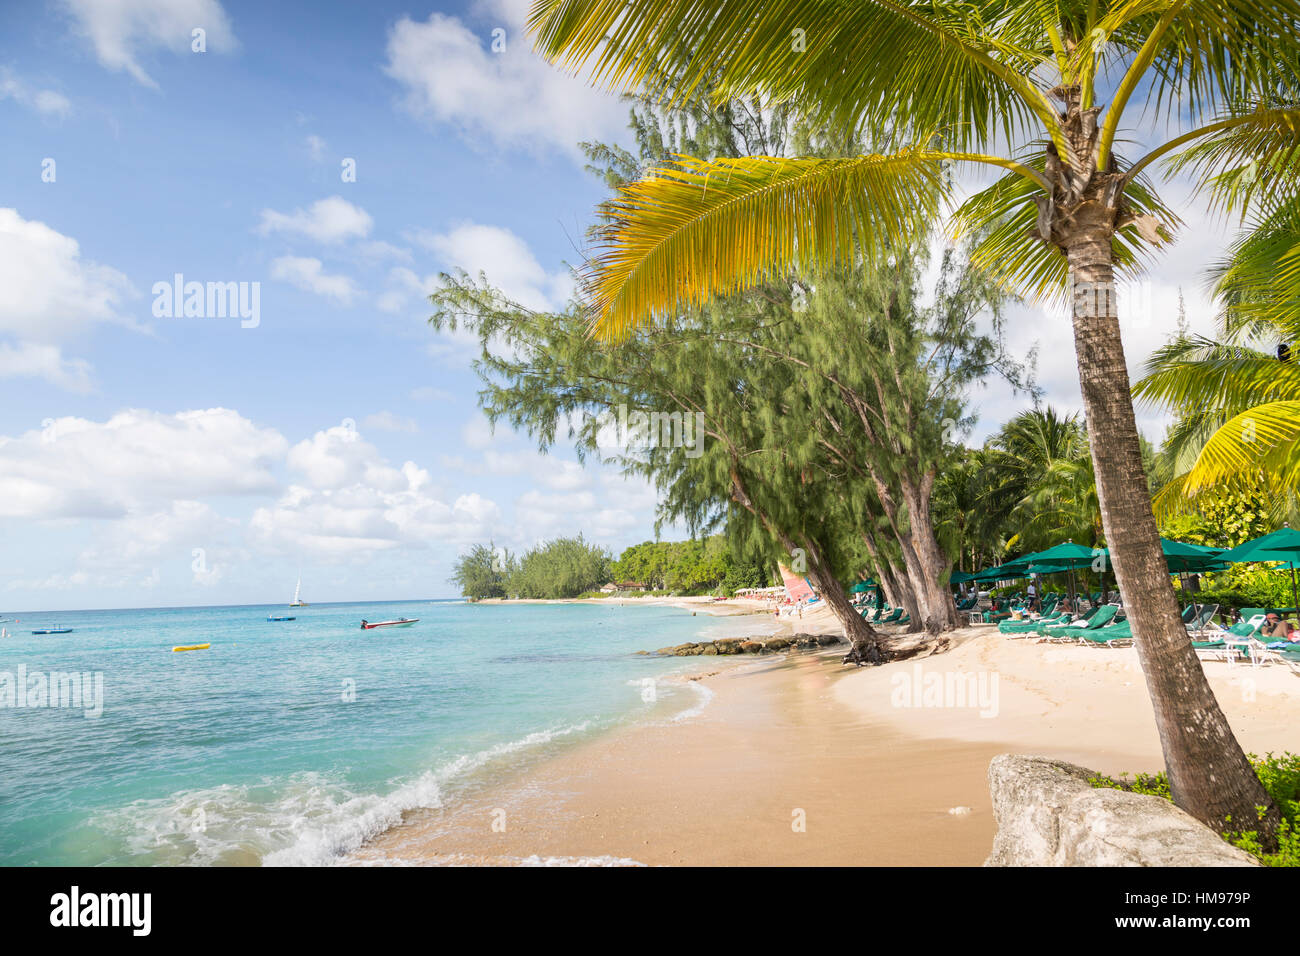 Beach, Holetown, St. James, Barbados, West Indies, Caribbean, Central America Stock Photo